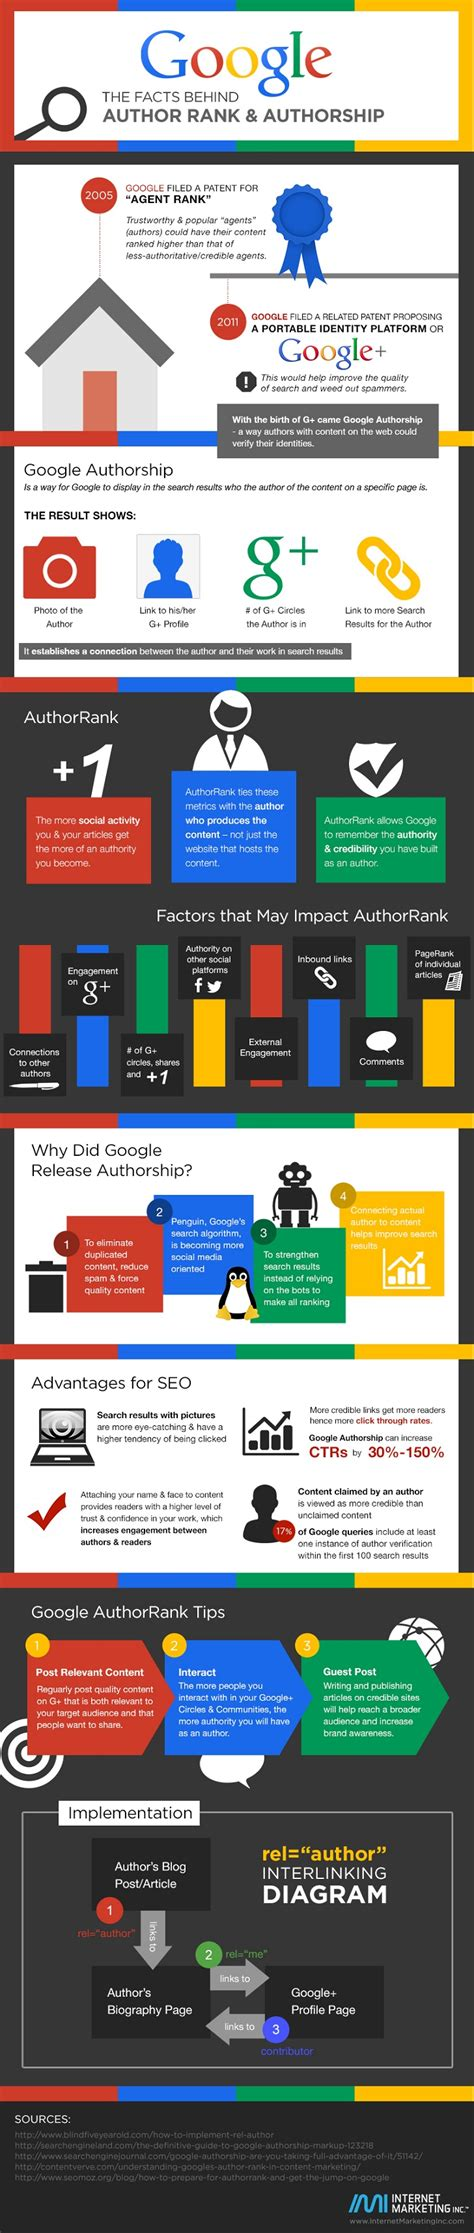 google images infographic google author rank authorship infographic the